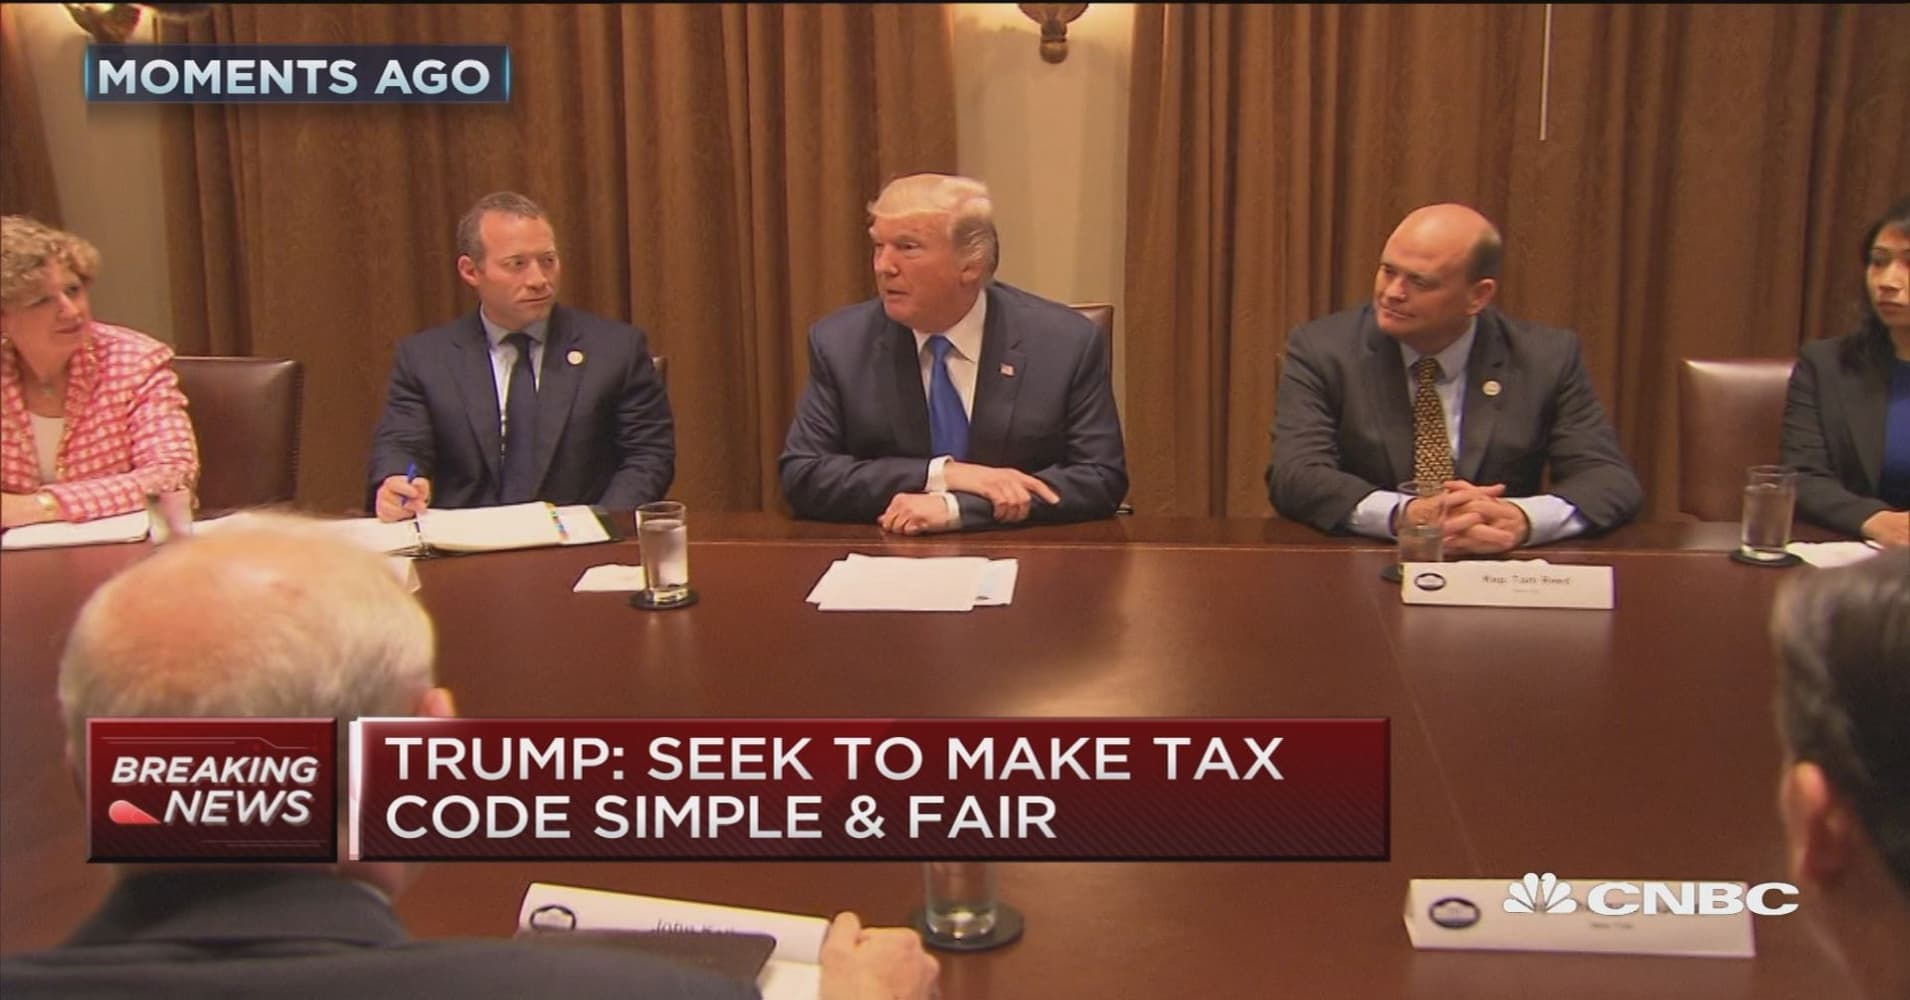 Trump says tax reform will not help the rich at all